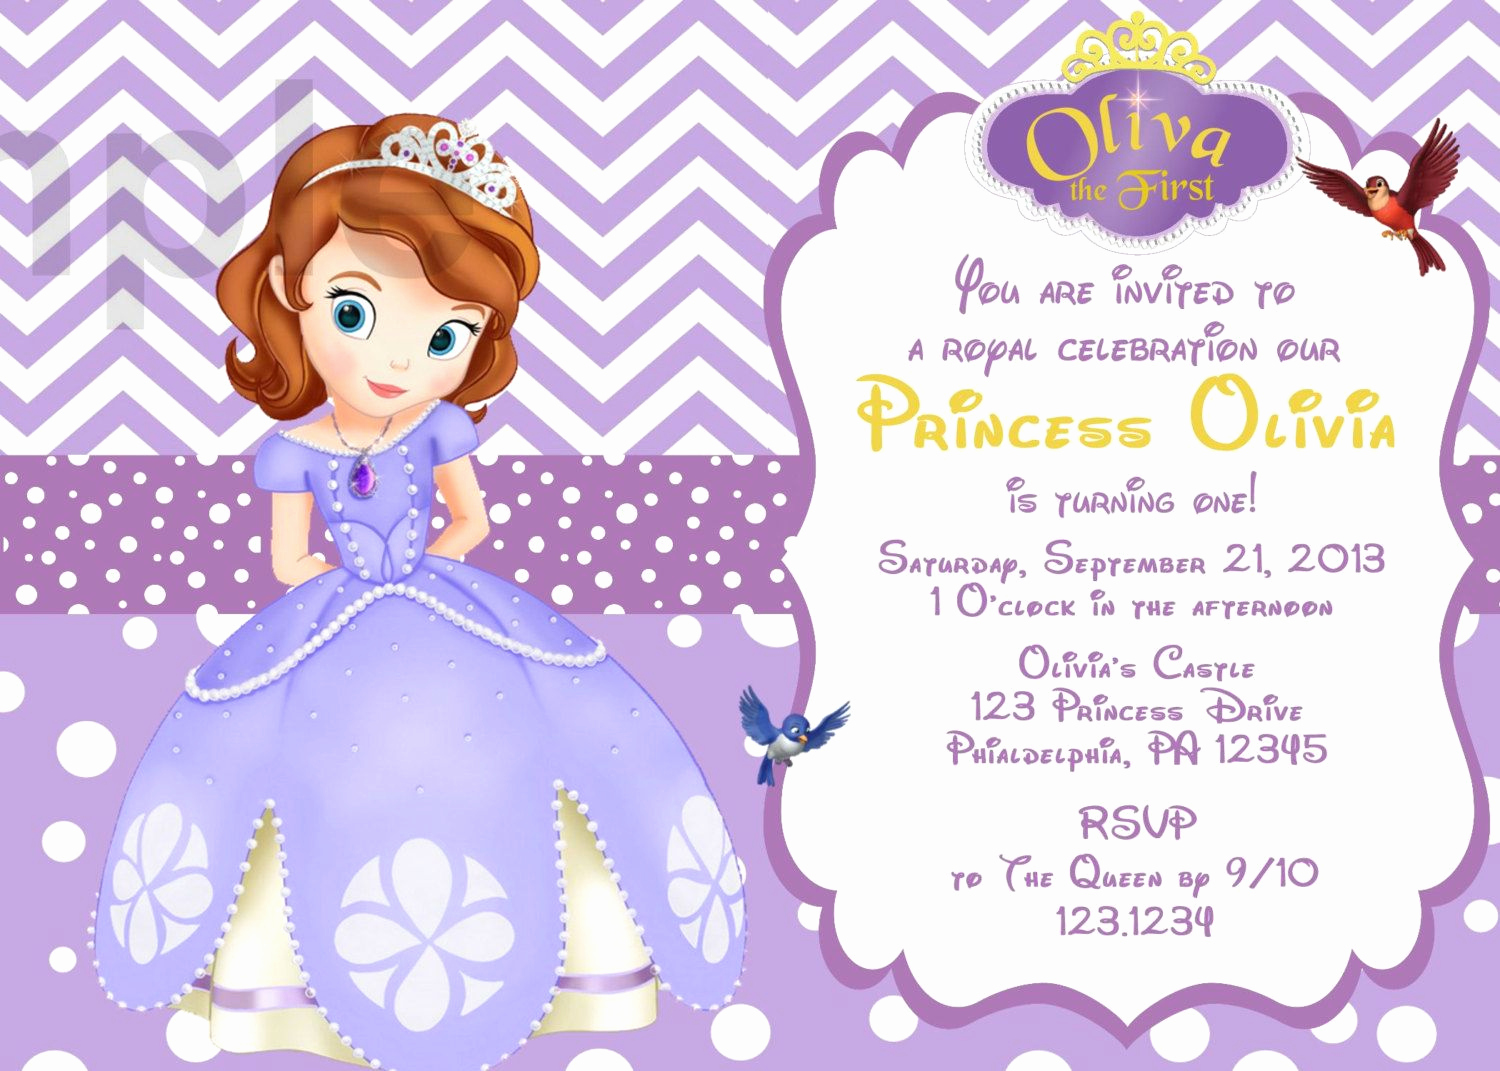 Sofia the First Invitation Elegant Il Fullxfull 3ct1 1500×1071